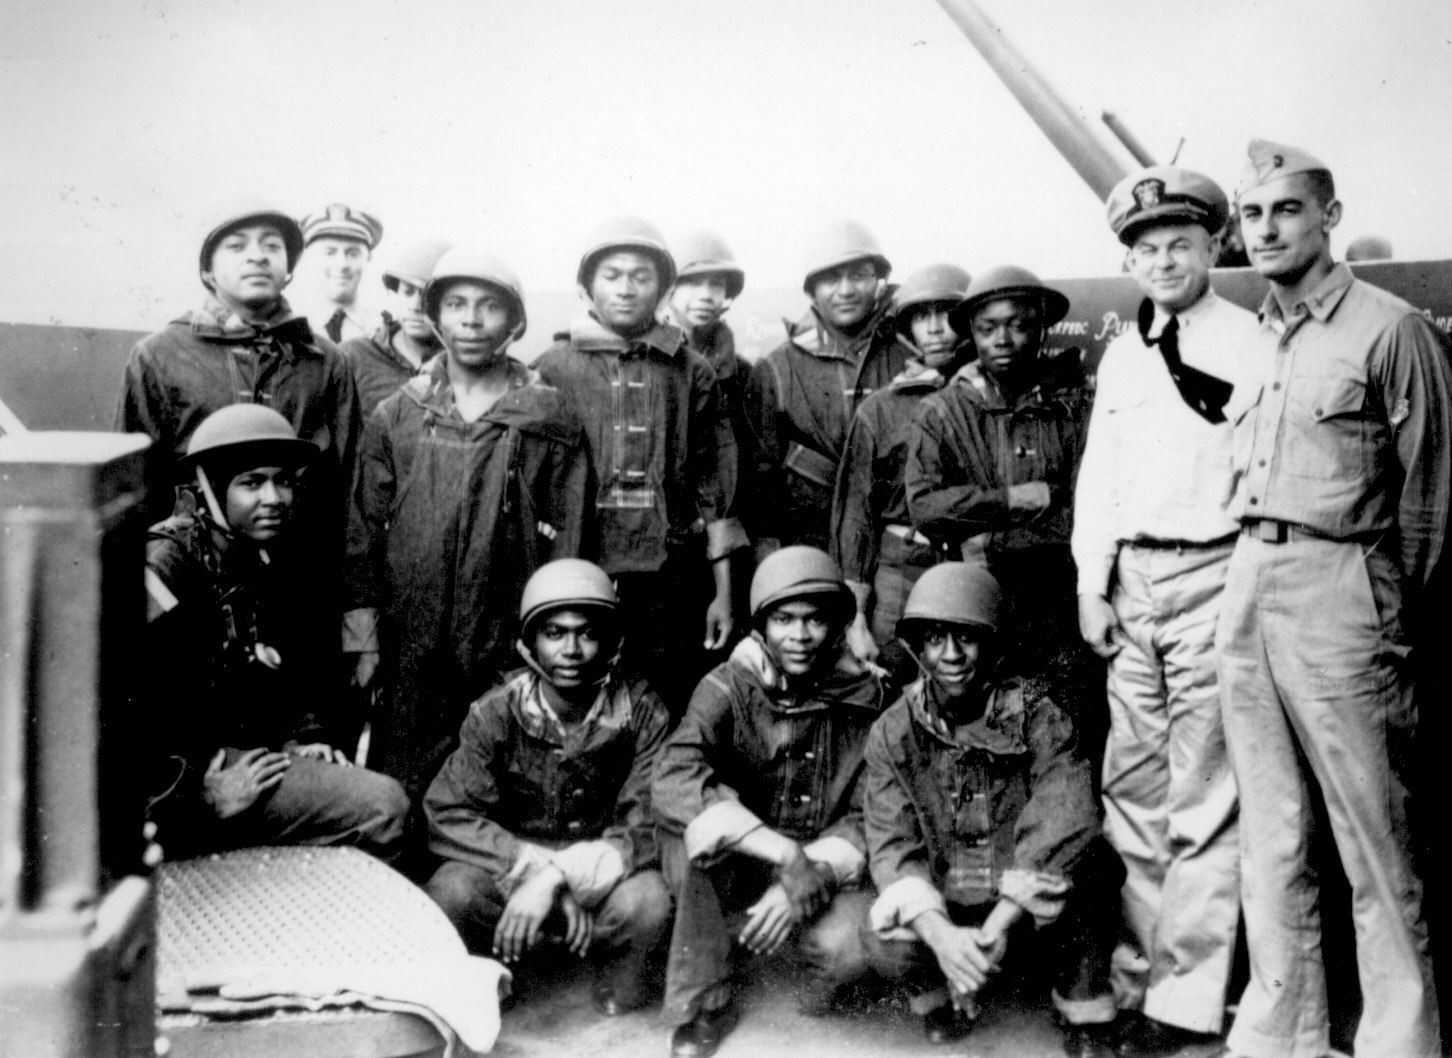 a history of the liberation of the united states of america The black liberation army (bla) was an underground, black nationalist militant organization that operated from 1970 to 1981 composed largely of former black panthers, the organization's program was one of armed struggle for the liberation and self-determination of black people in the united states.